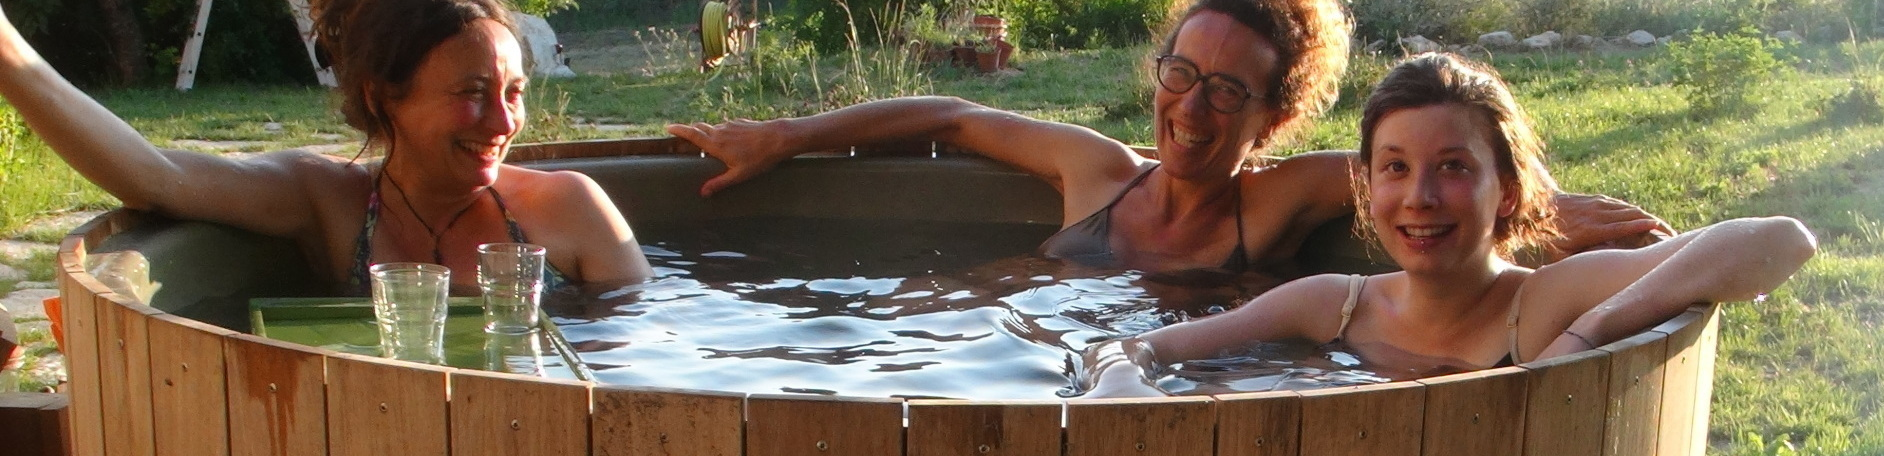 vasca all'aperto naturale dutchtub wood bed breakfast